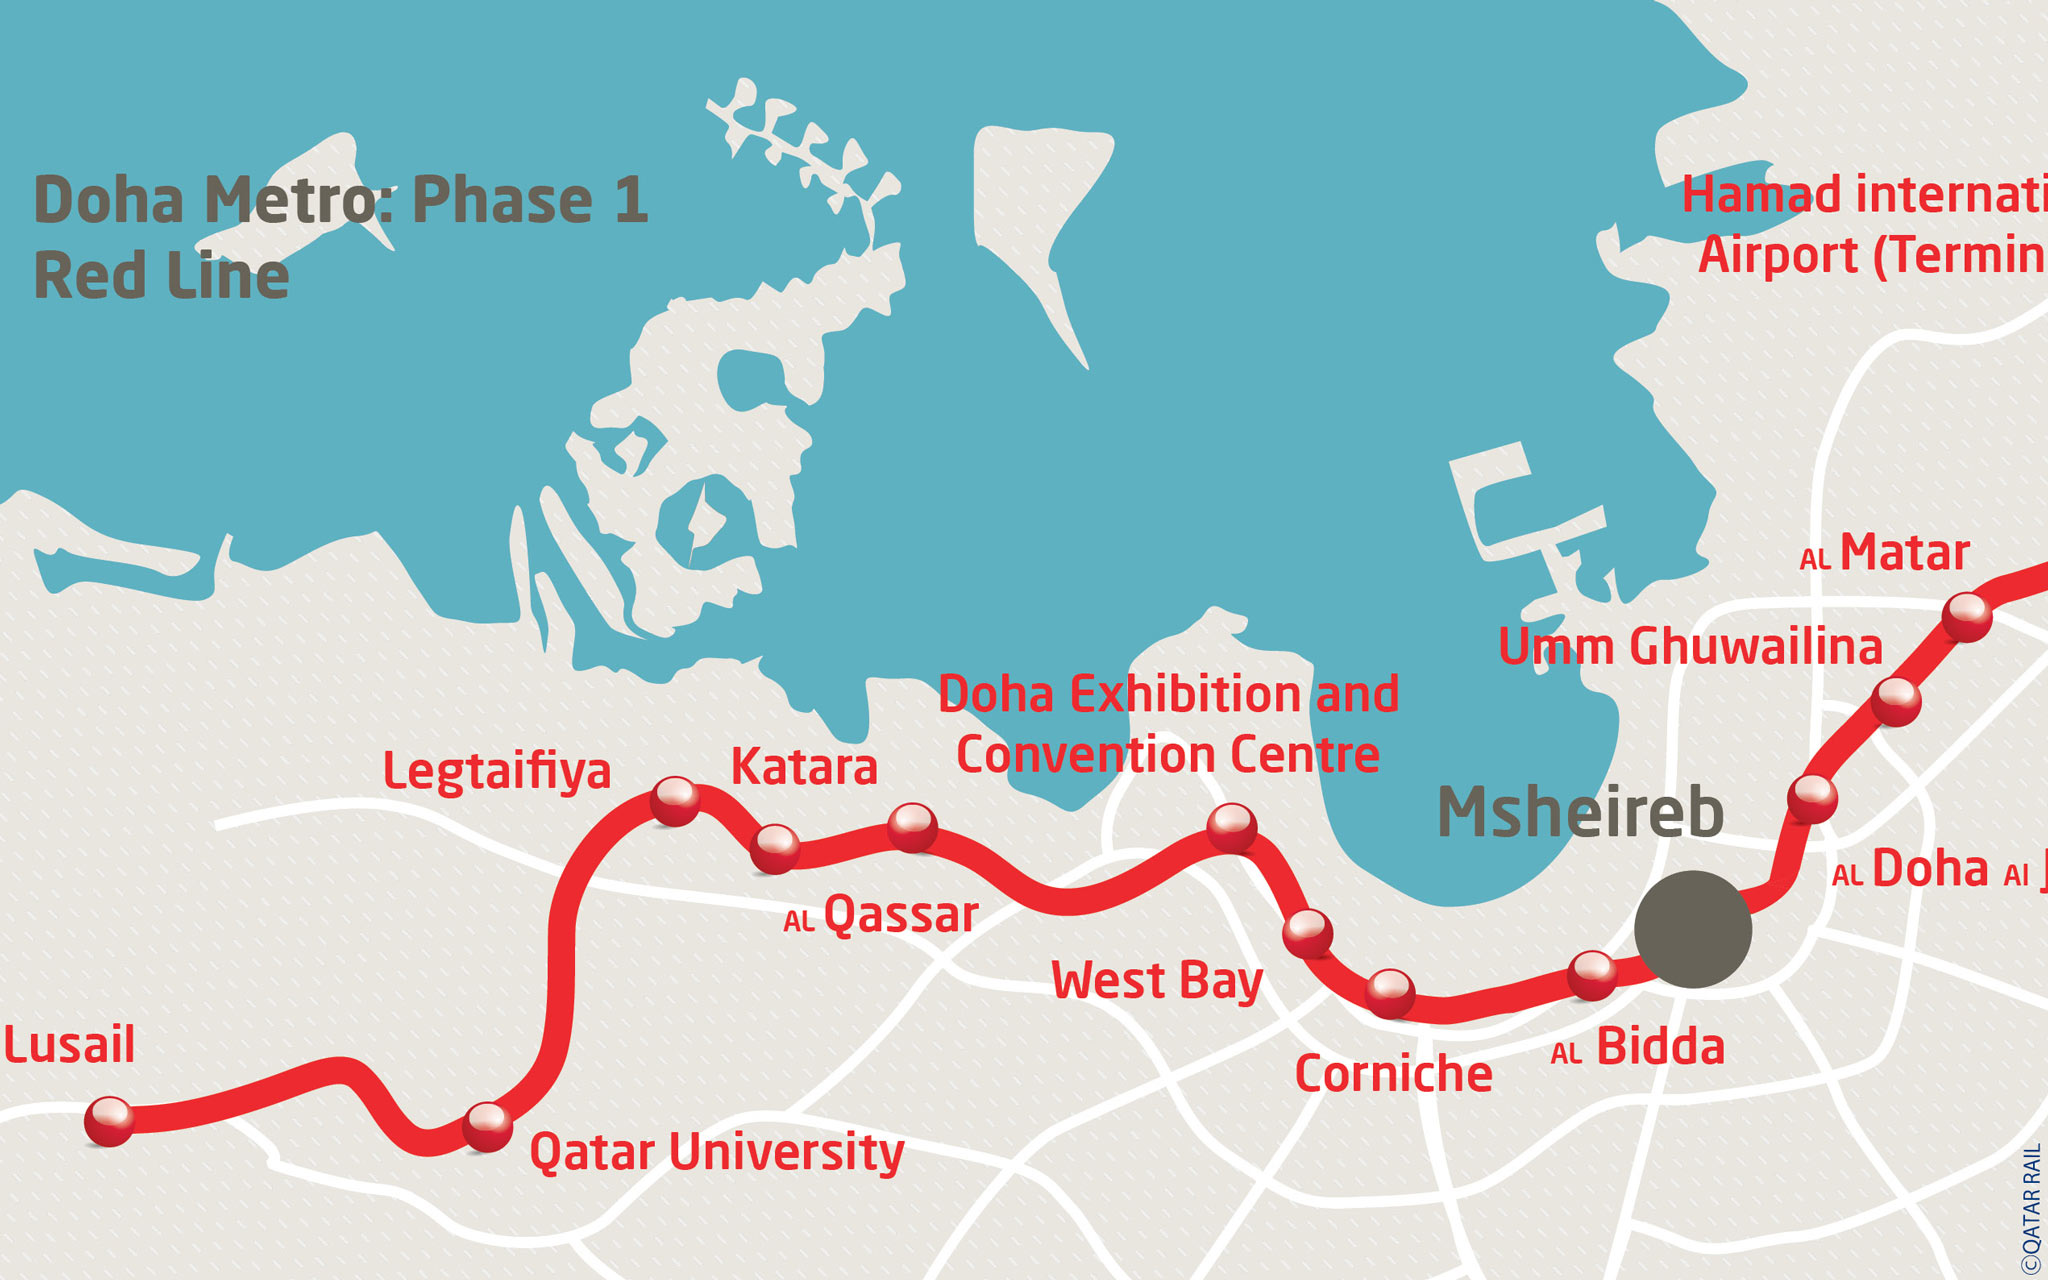 Doha Metro Red Line Major Elevated Civil Works